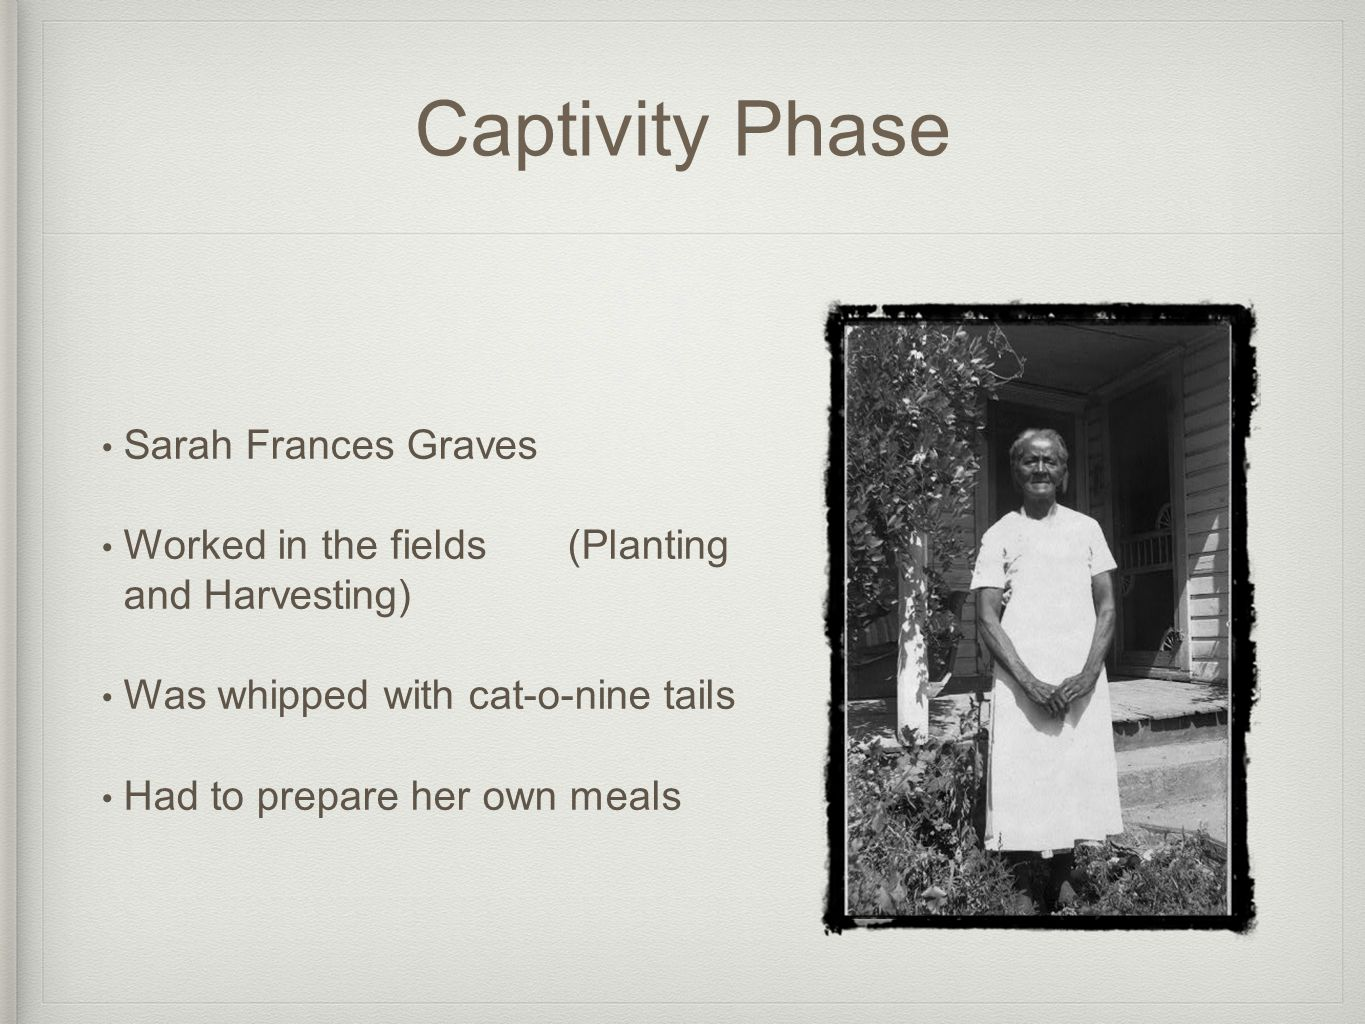 Captivity Phase Sarah Frances Graves Worked in the fields (Planting and Harvesting) Was whipped with cat-o-nine tails Had to prepare her own meals